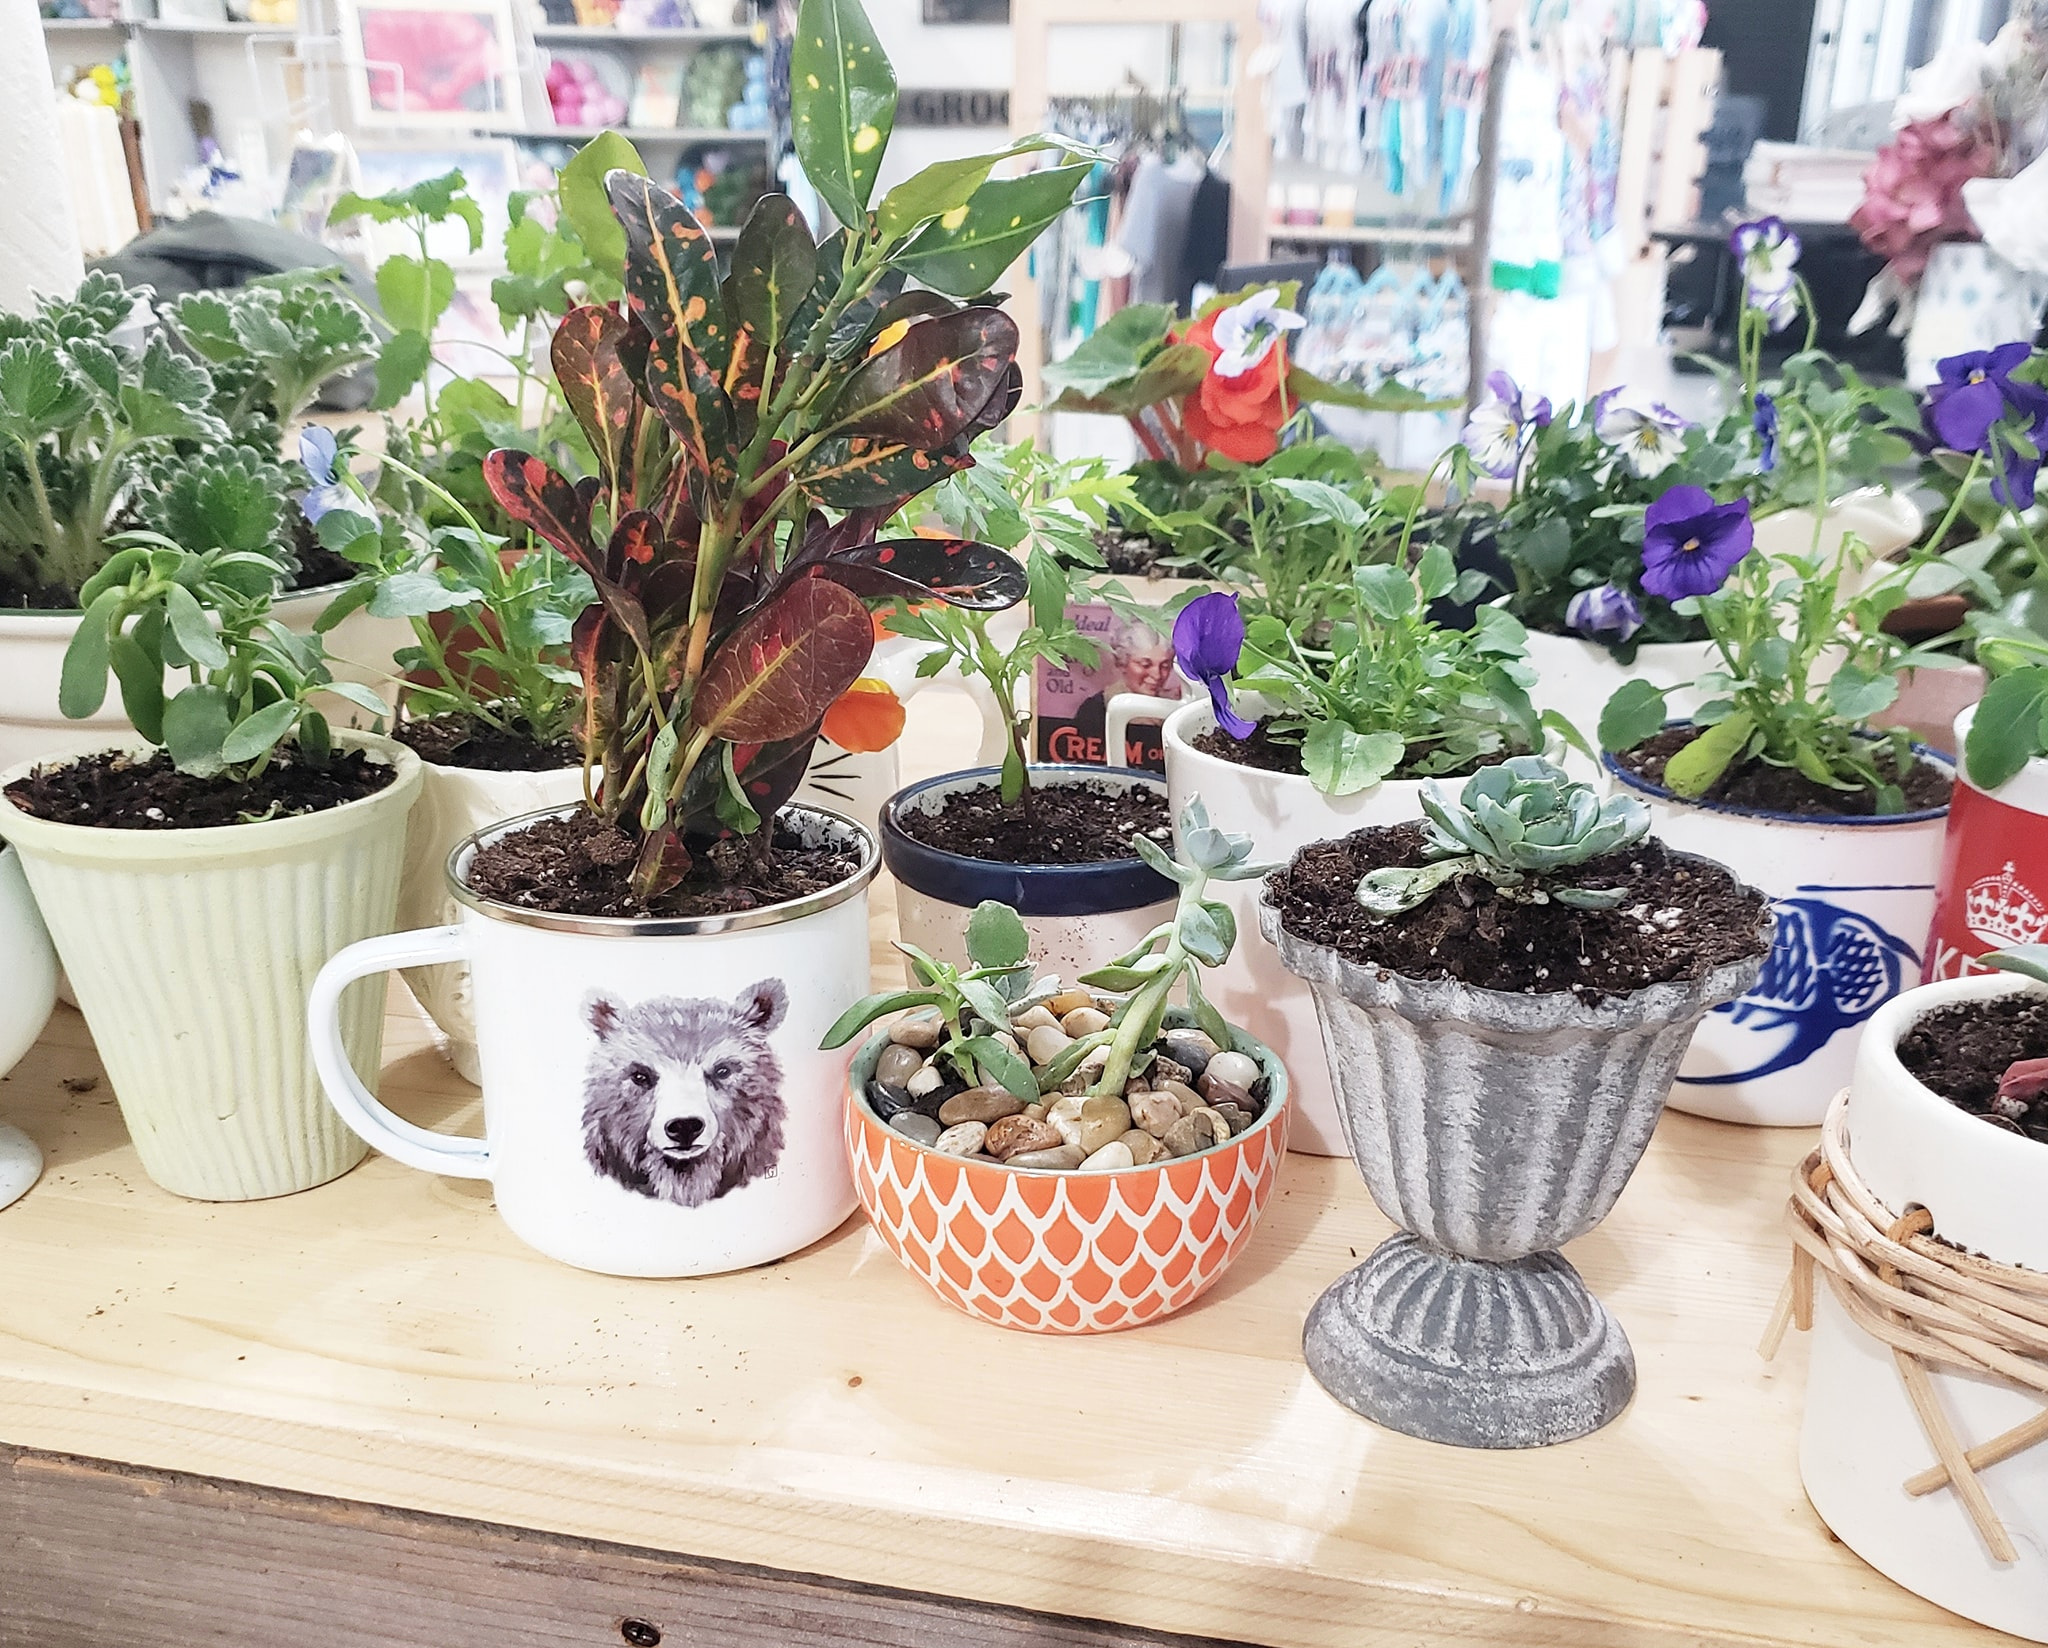 The first 20 customers received free potted plants